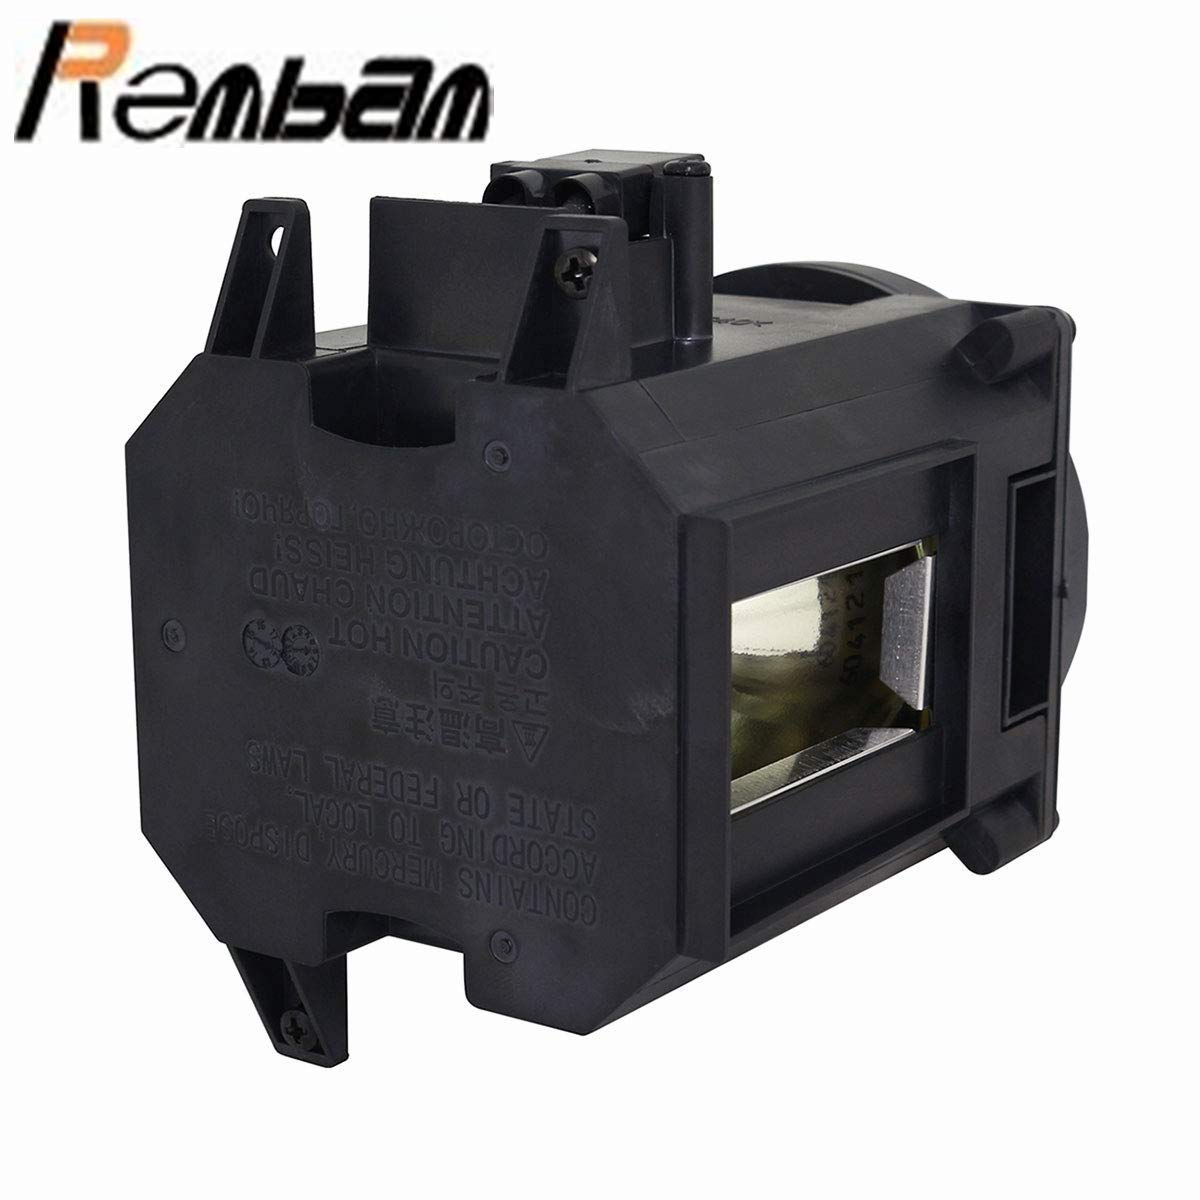 Rembam NP26LP Hight Quality Replacement Projector Lamp with Housing for NEC PA522U PA571W PA571W-13ZL PA621X PA621X-13ZL PA622U PA672W PA672W-13ZL PA722X PA722X-13ZL